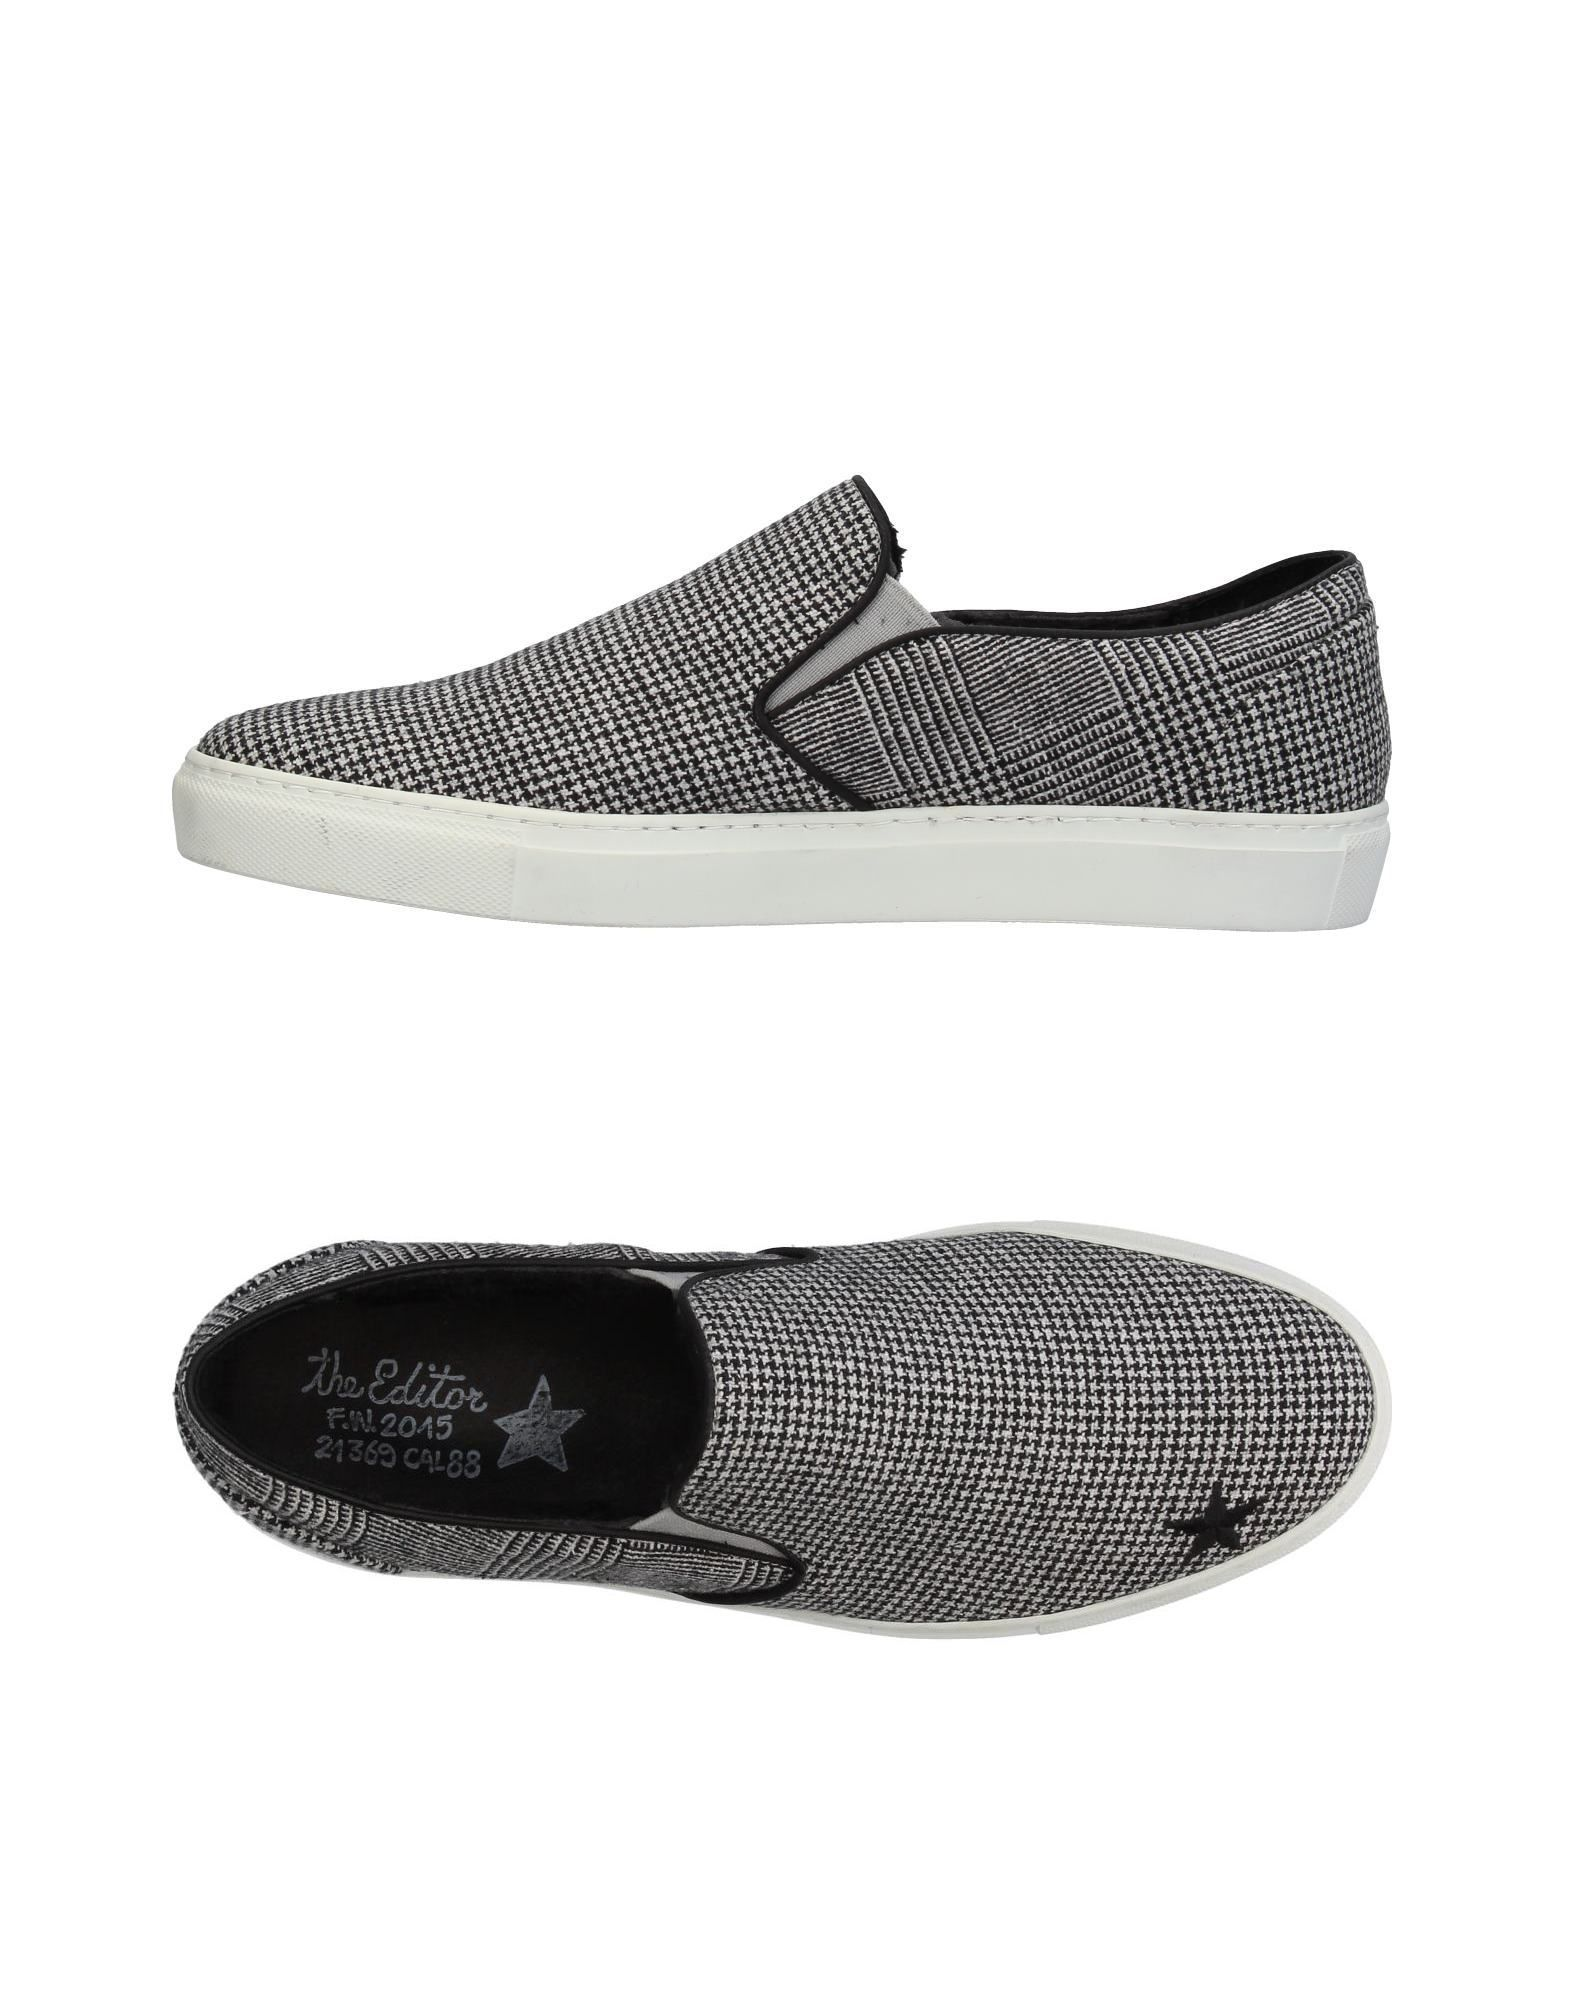 Sneakers The Editor Homme - Sneakers The Editor  Noir Chaussures casual sauvages